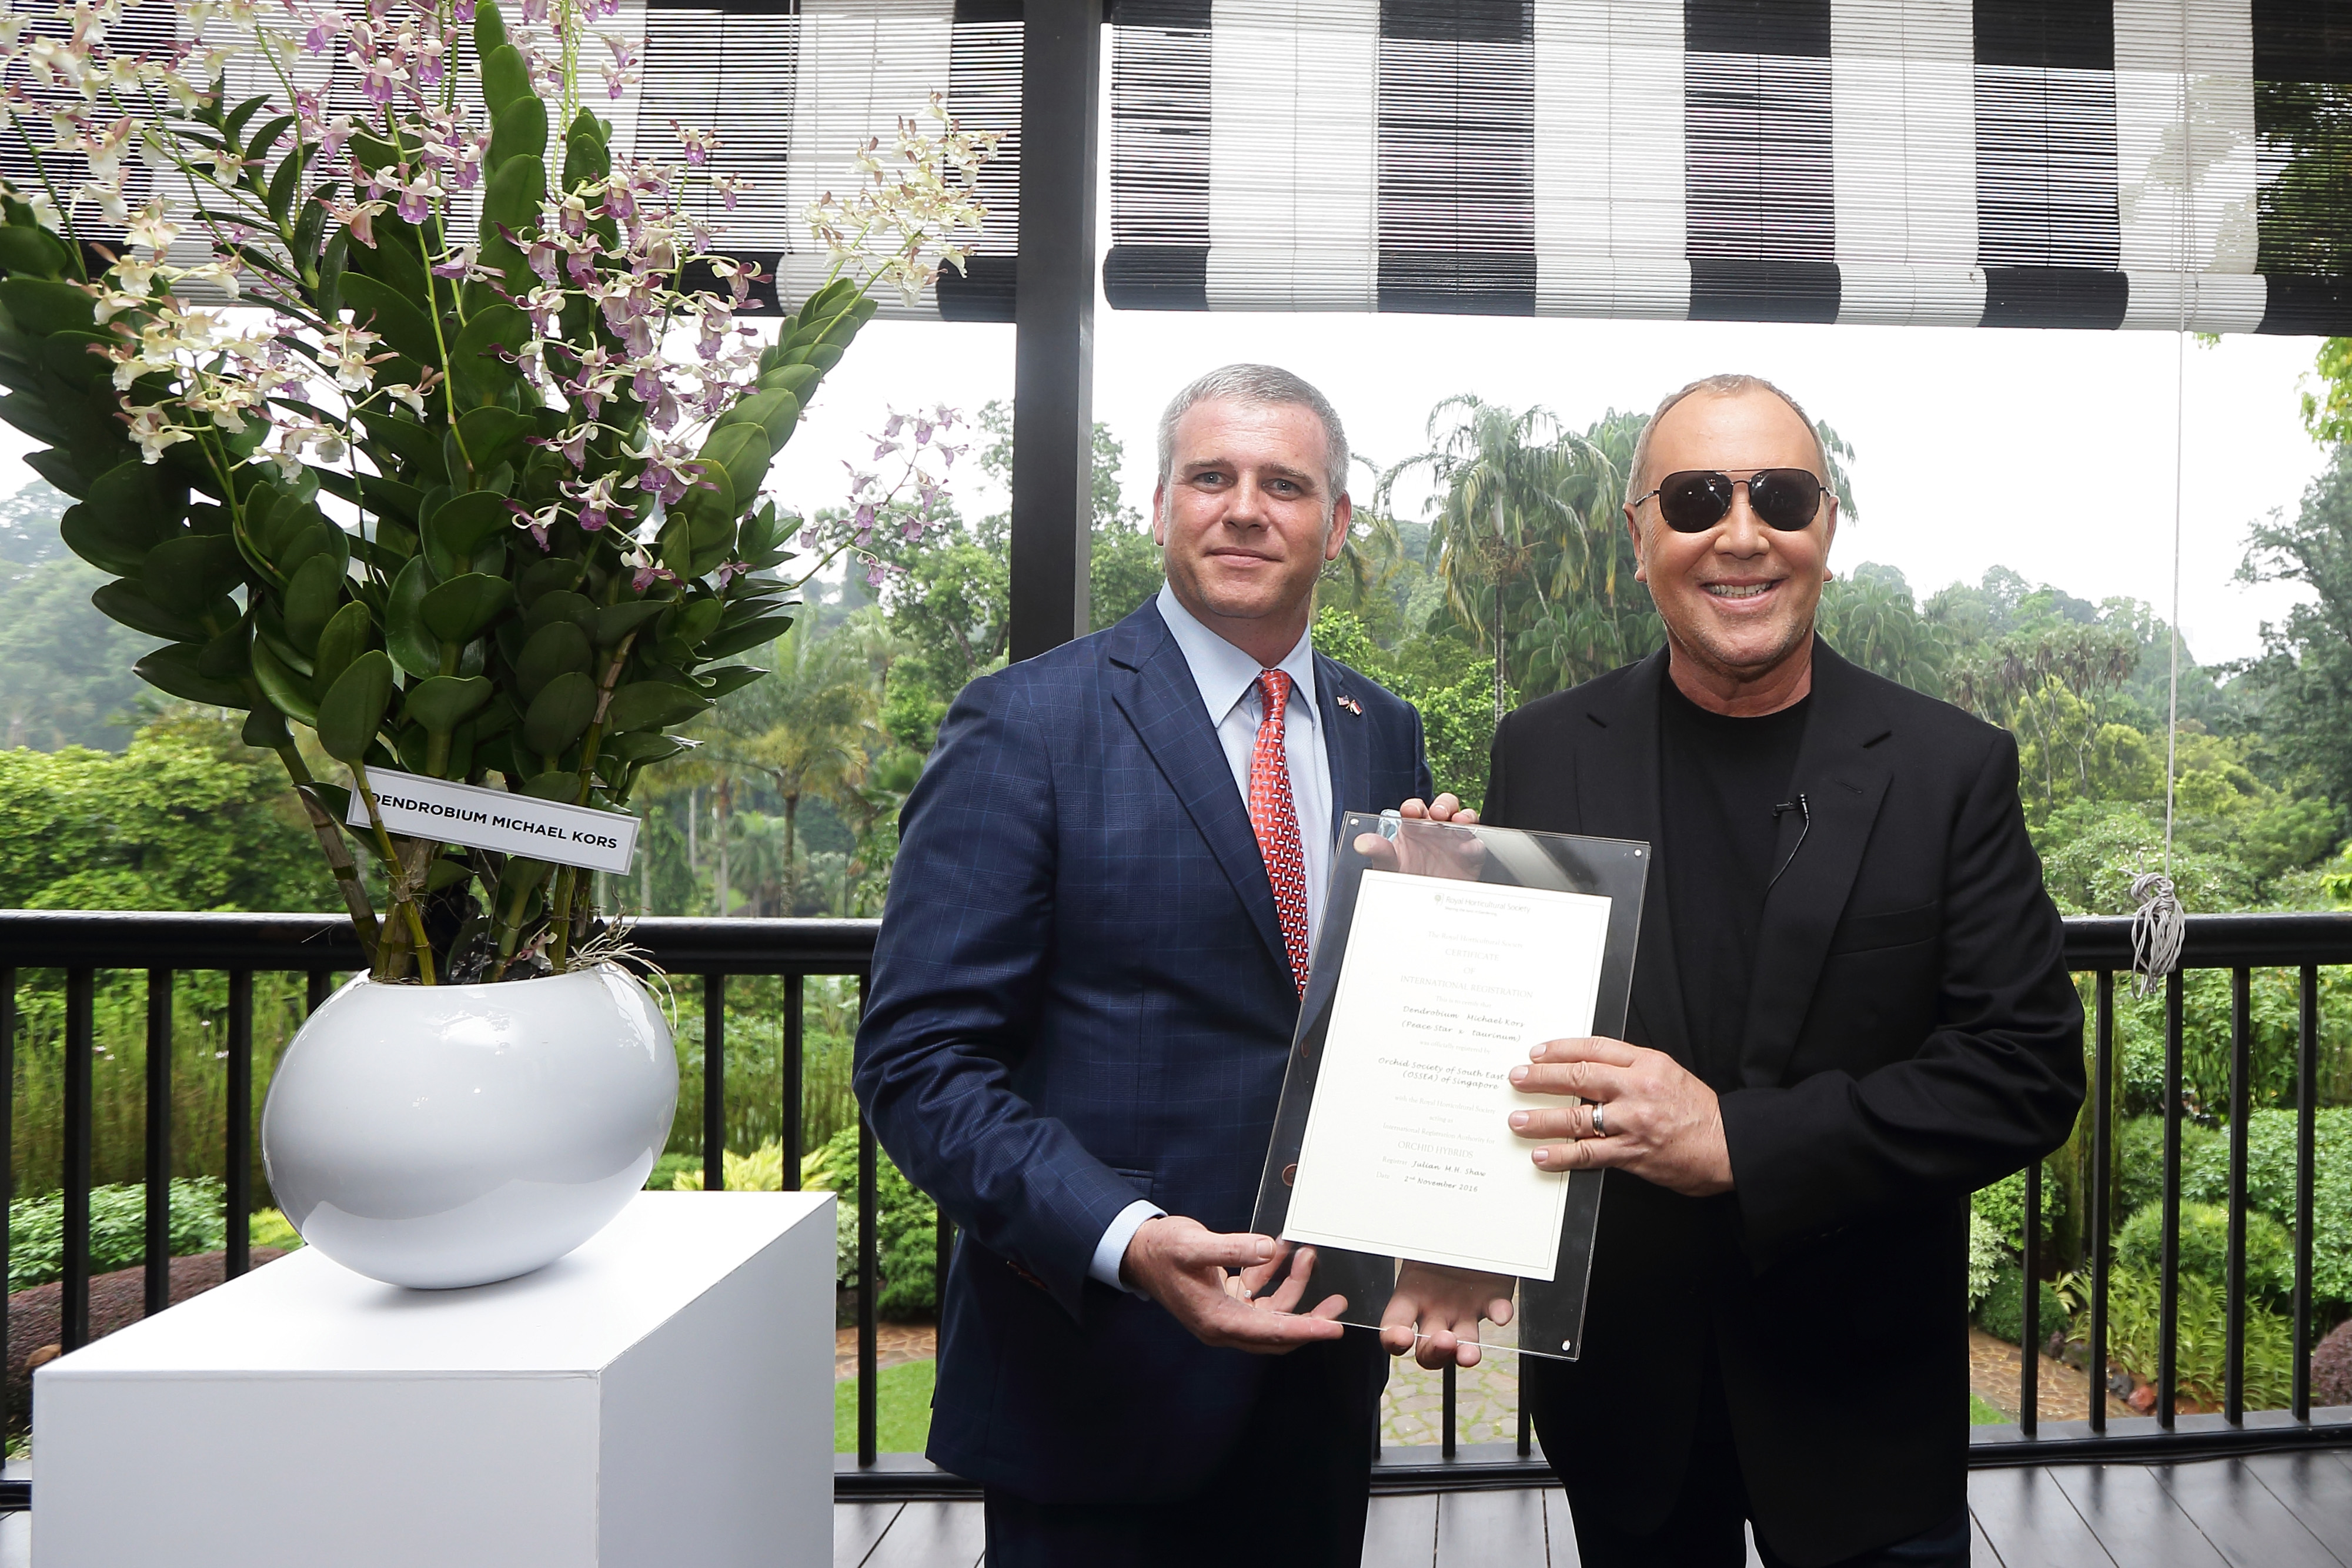 SINGAPORE - NOVEMBER 14: American designer, Michael Kors (R) received a plaque certificate from U.S. Ambassador, Kirk Wagar during the Michael Kors Orchid Naming Ceremony at the National Orchid Garden on November 14, 2016 in Singapore. (Photo by Suhaimi Abdullah/Getty Images for Michael Kors)